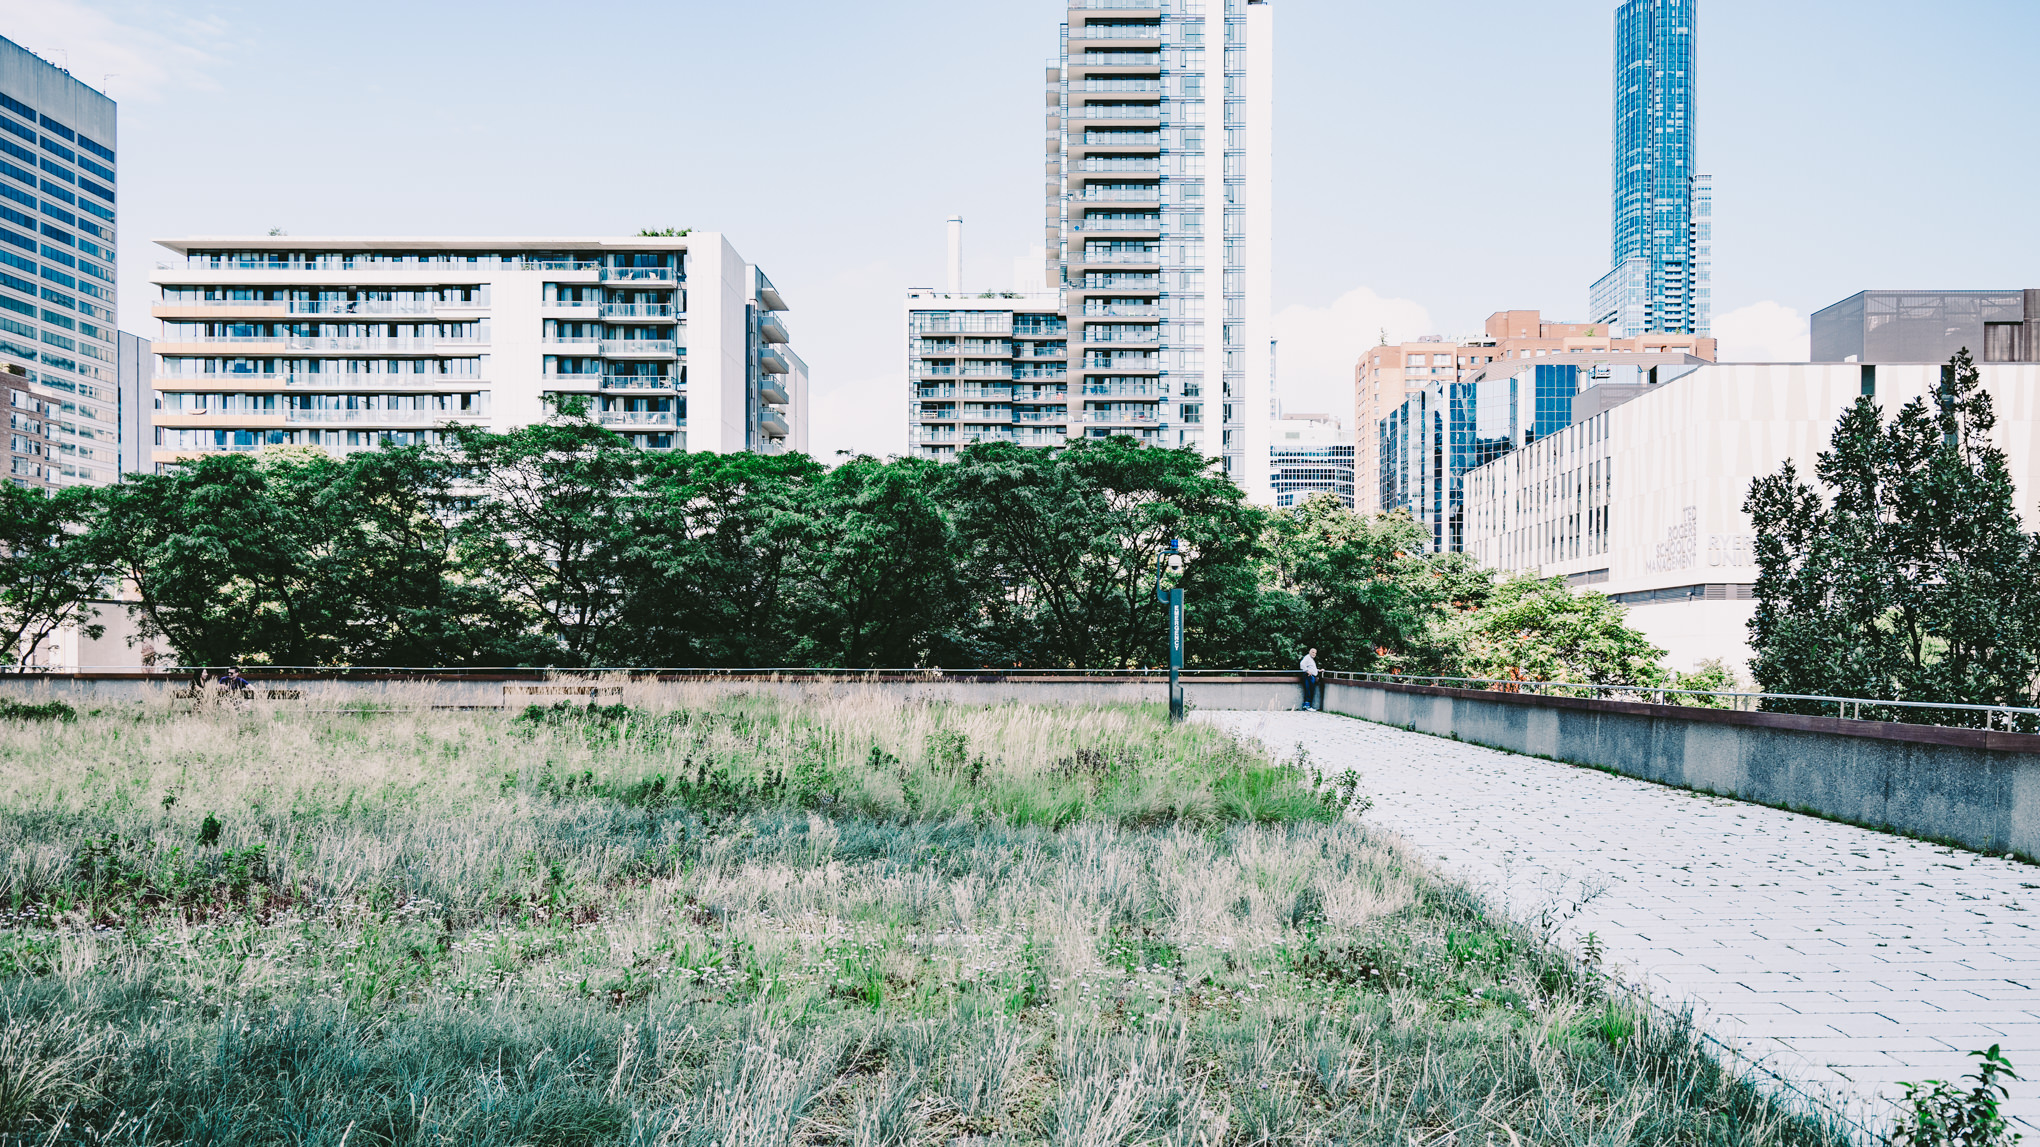 Experiencing the City Hall Green Roof Architecture in Photos by Scott